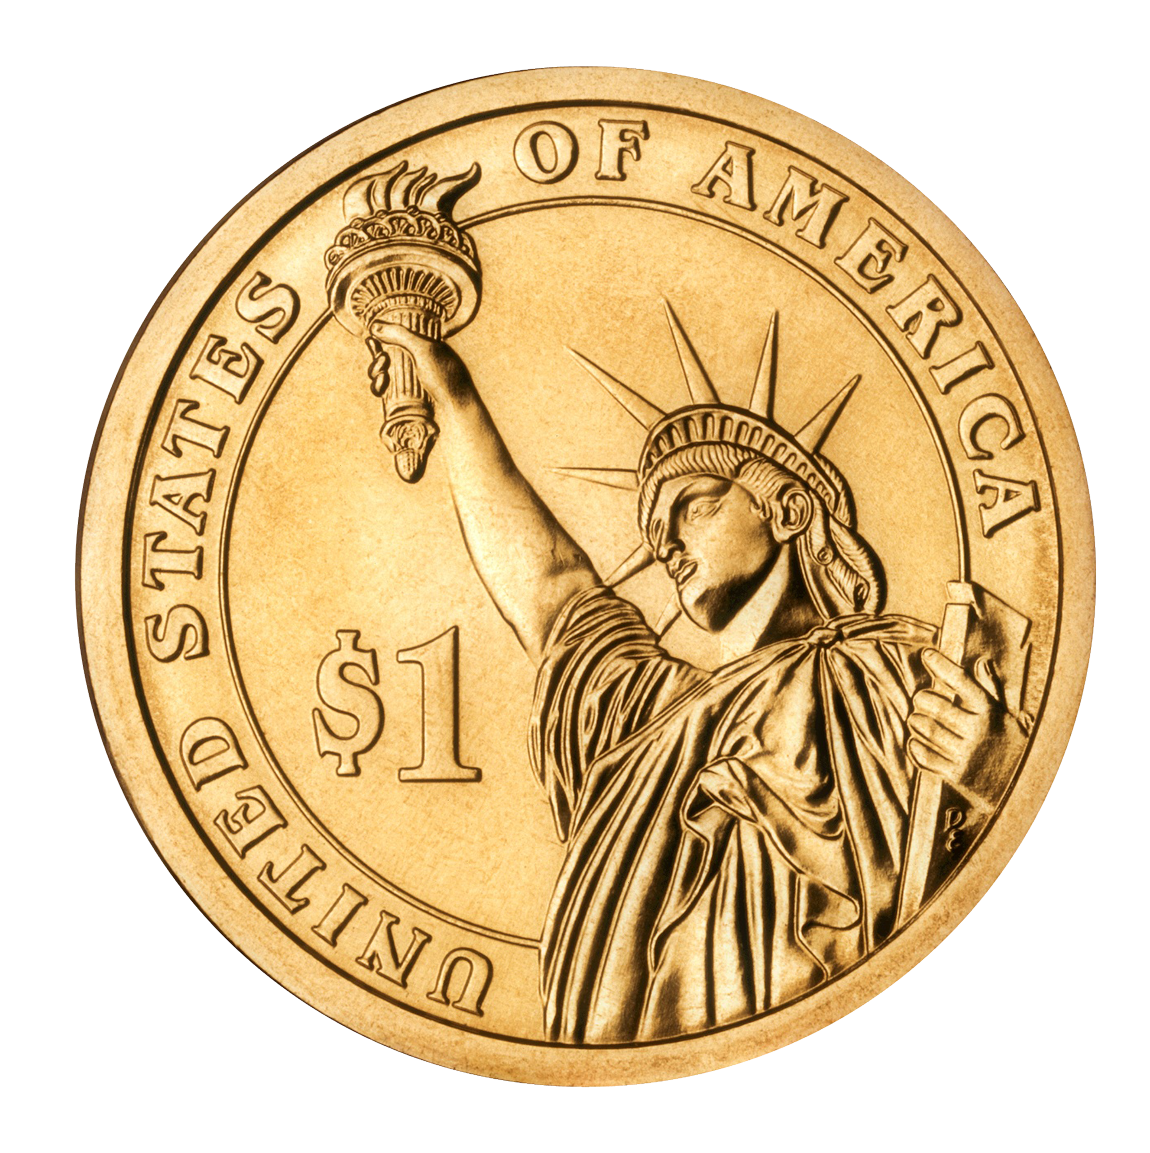 United Dollar States Program Coin Presidential $1 PNG Image